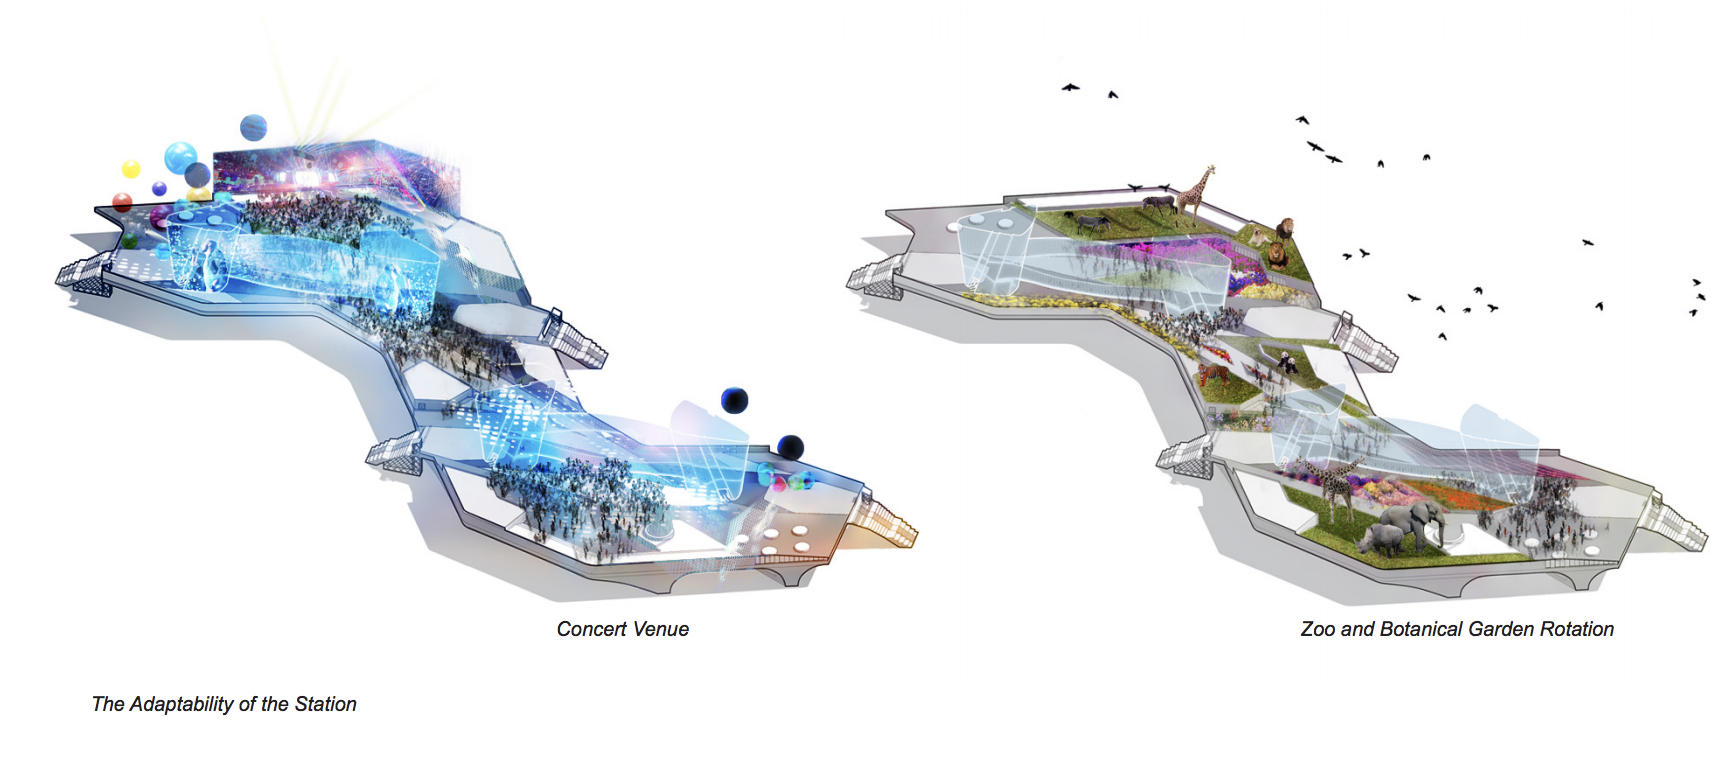 Here are some uberAIR 'Skyport' design concepts